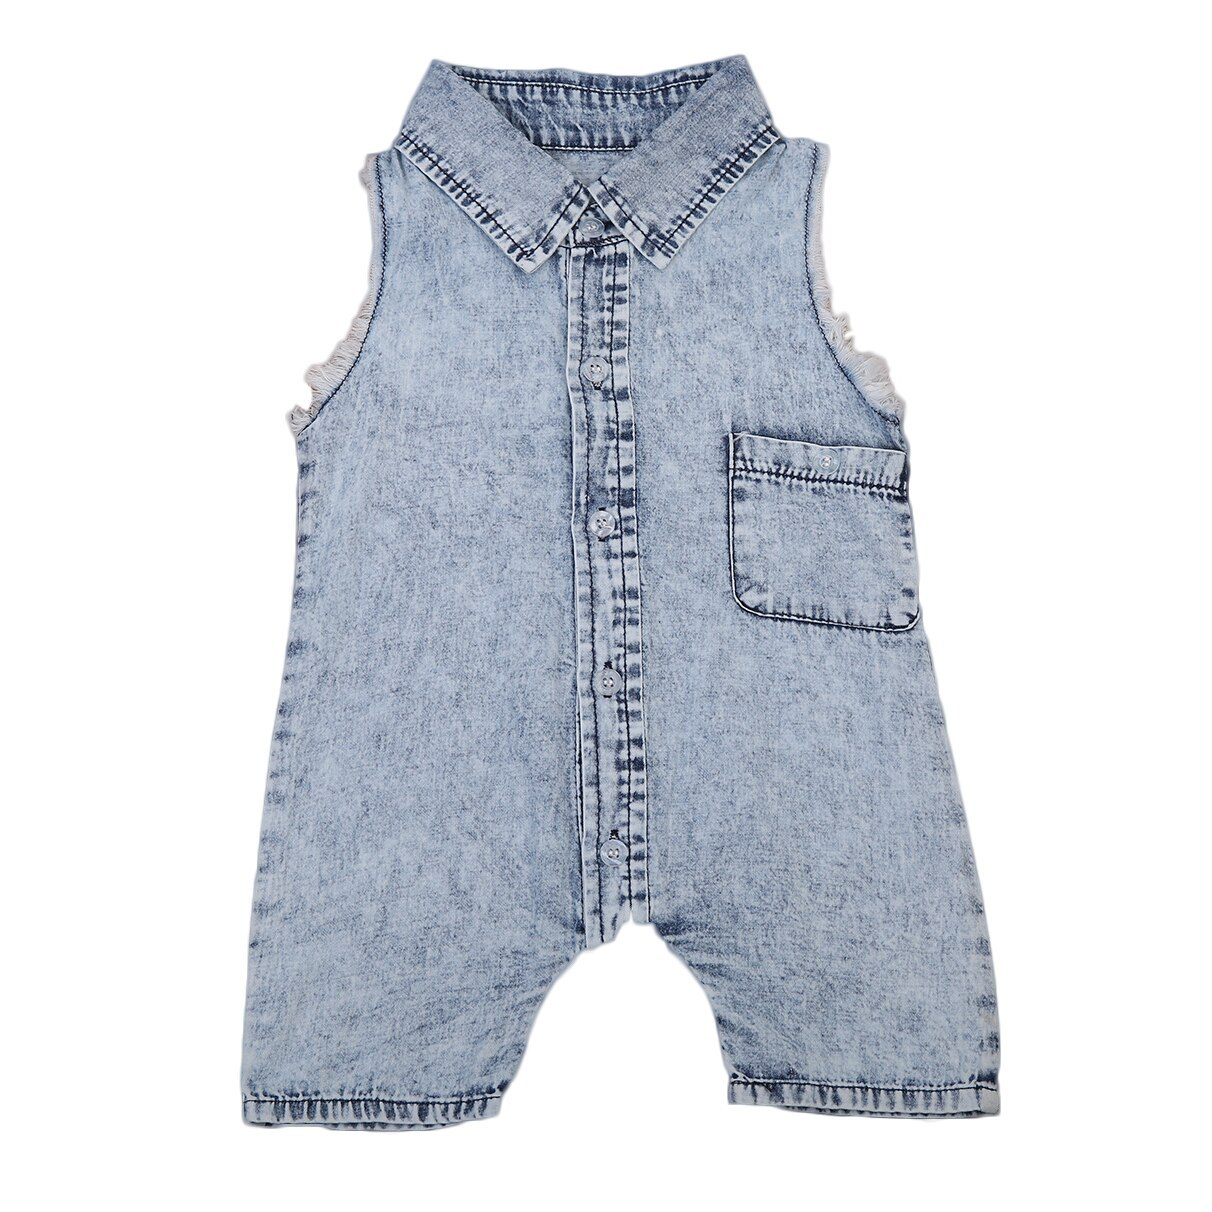 Primary image for Pudcoco Baby Boys Denim Rompers With Turn Down Collar Tank Romper Overall Sleeve